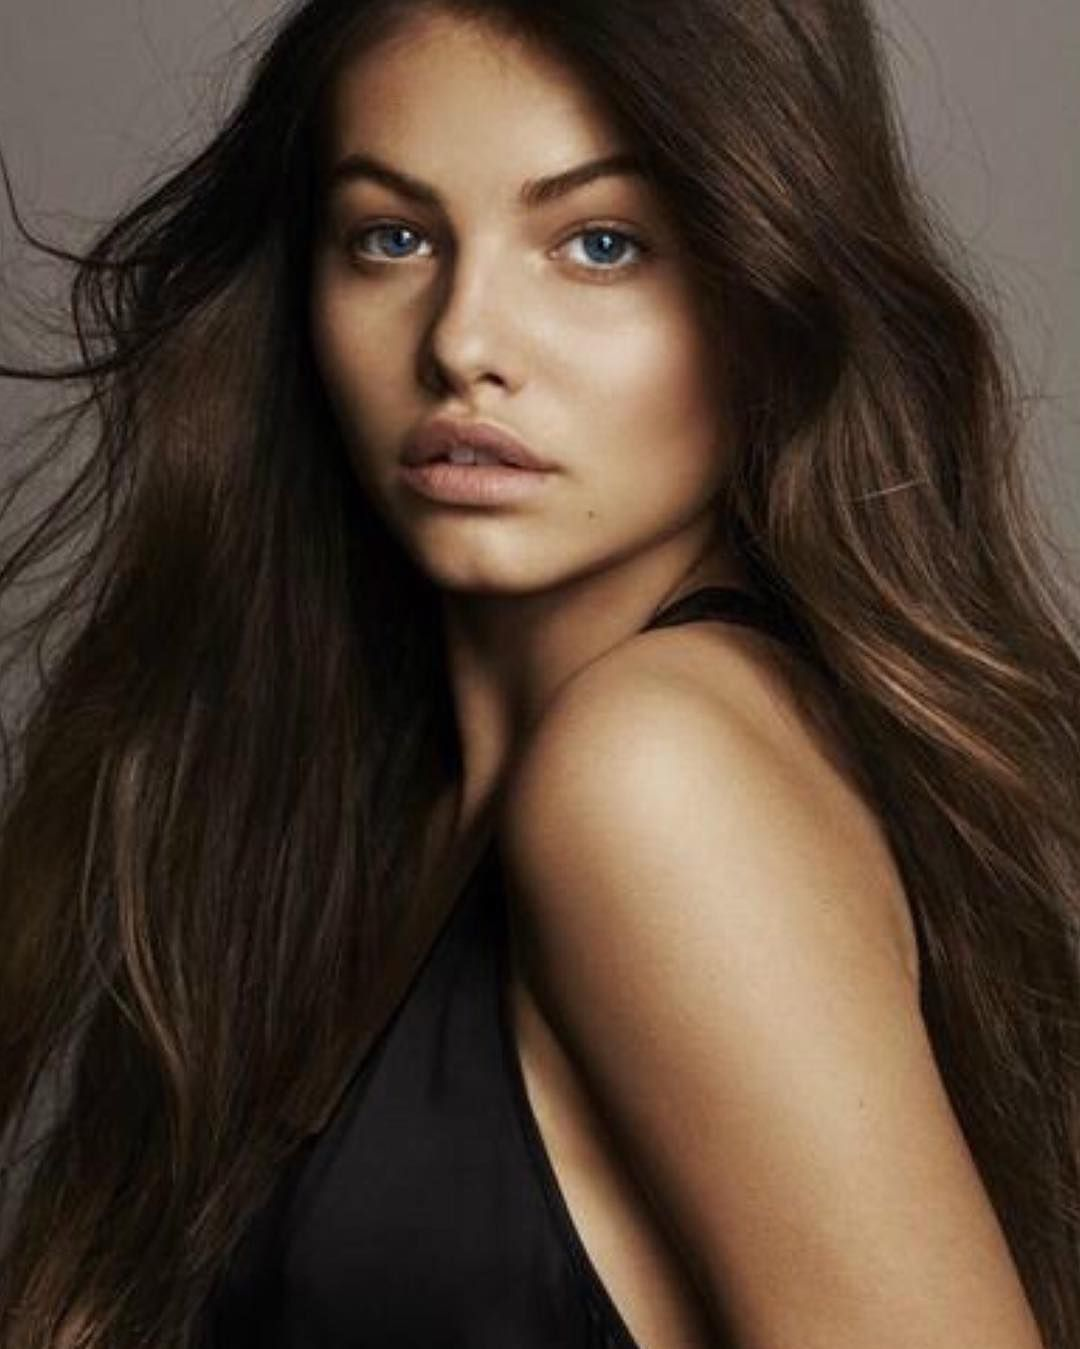 Thylane Blondeau The Most Beautiful Girl In The World Is